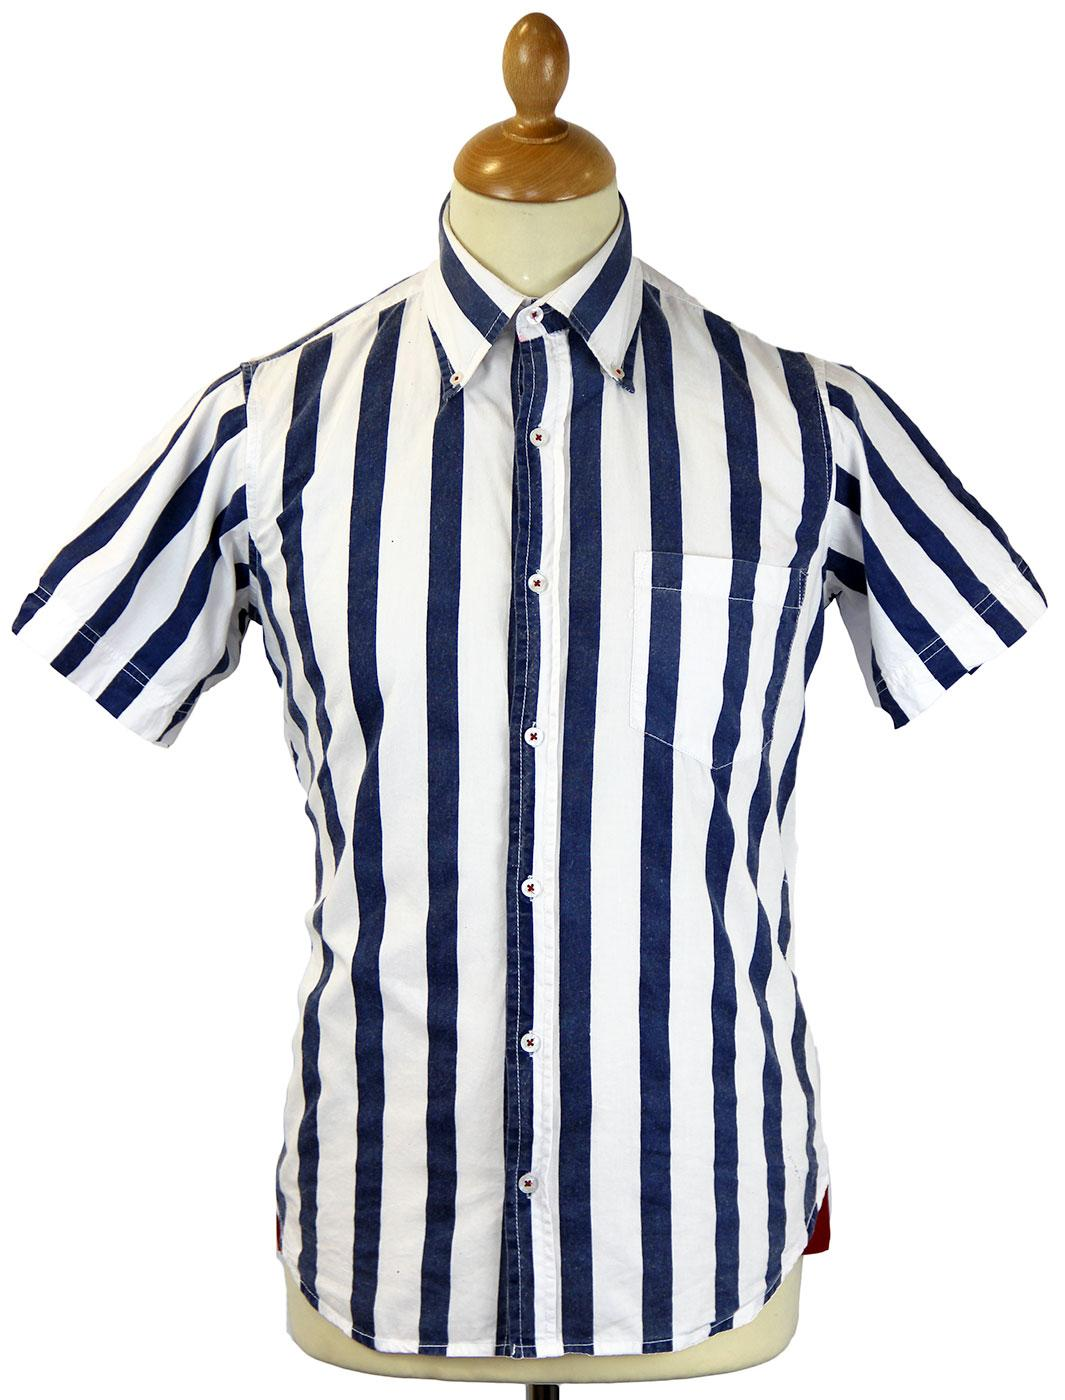 Denton DAVID WATTS Retro Mod Thick Stripe Shirt B